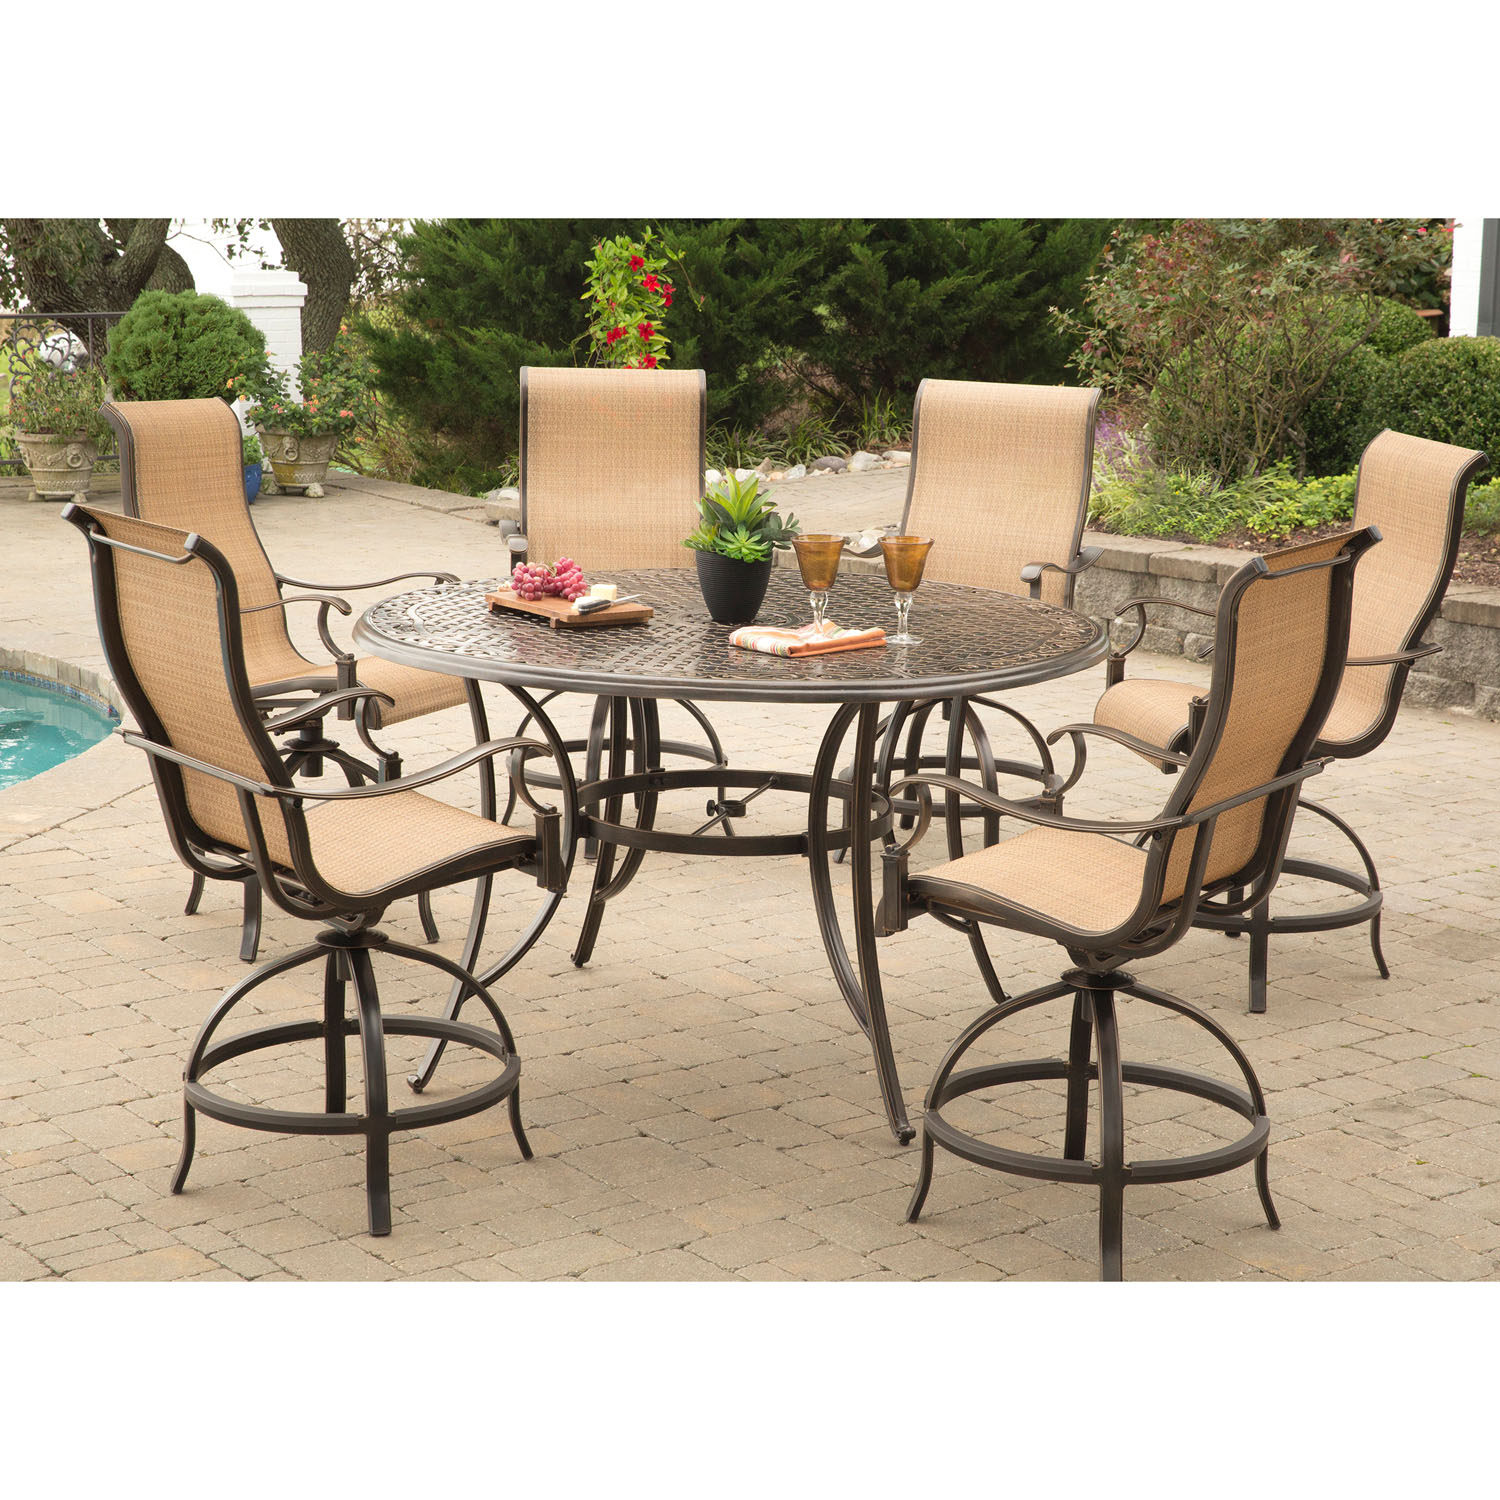 Hanover Manor 7 Piece High Dining Set With 6 Contoured